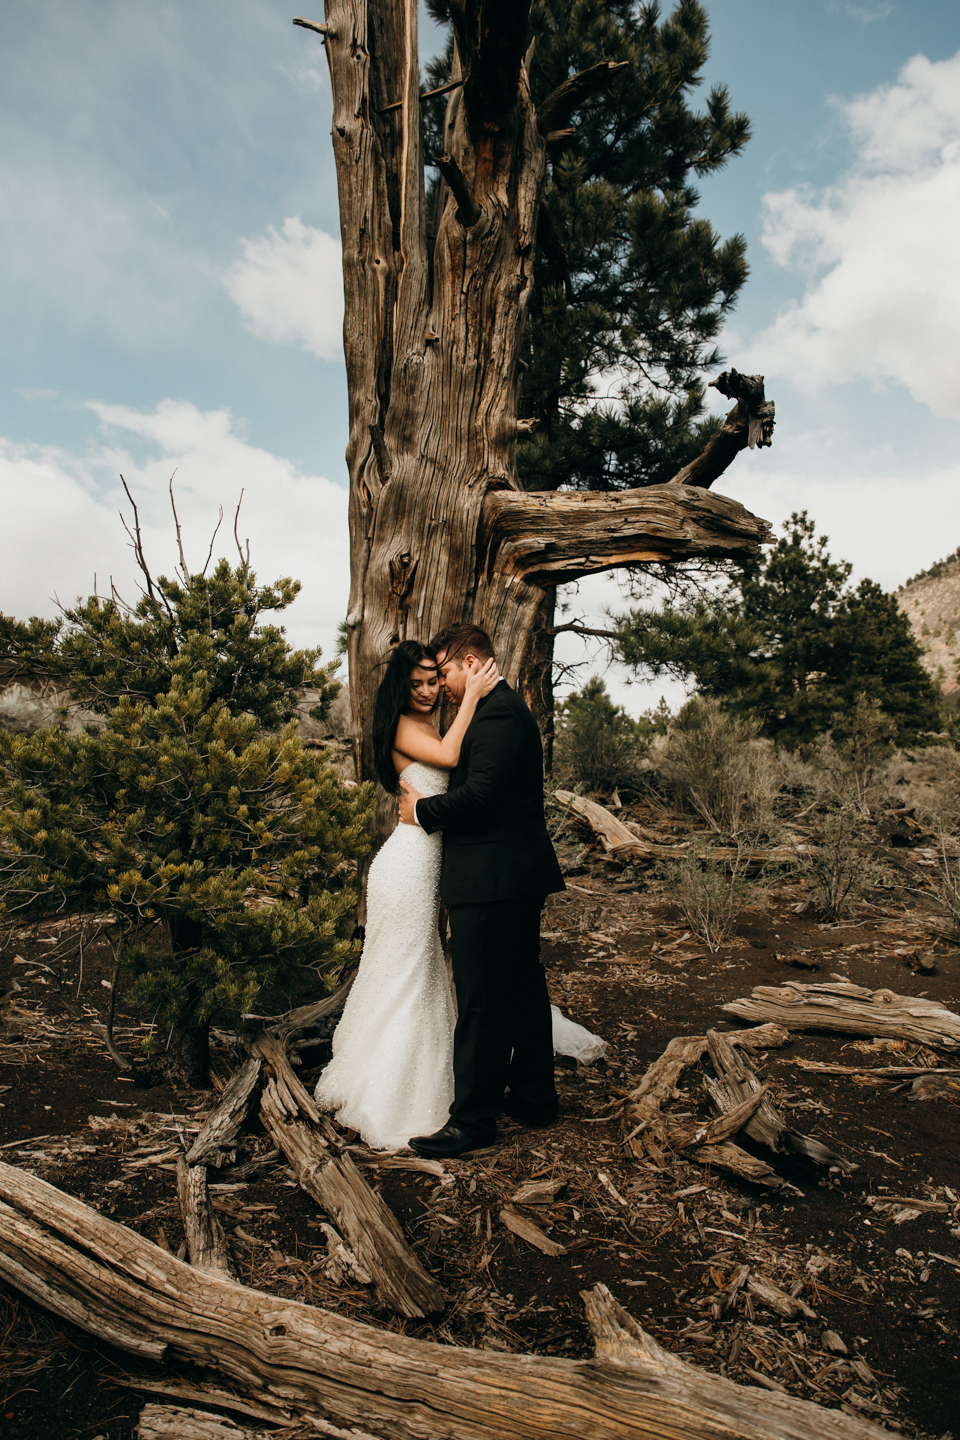 Phoenix Wedding Photographer     Phoenix Elopement Photographer    Phoenix Engagement Photographer    Phoenix Senior Photographer    Phoenix Family Photographer     Phoenix Event Photographer       Scottsdale Wedding Photographer     Scottsdale Elopement Photographer    Scottsdale Engagement Photographer    Scottsdale Senior Photographer    Scottsdale Family Photographer     Scottsdale Event Photographer    Arizona Wedding Photographer     Arizona Elopement Photographer    Arizona Engagement Photographer    Arizona Senior Photographer    Arizona Family Photographer     Arizona Event Photographer